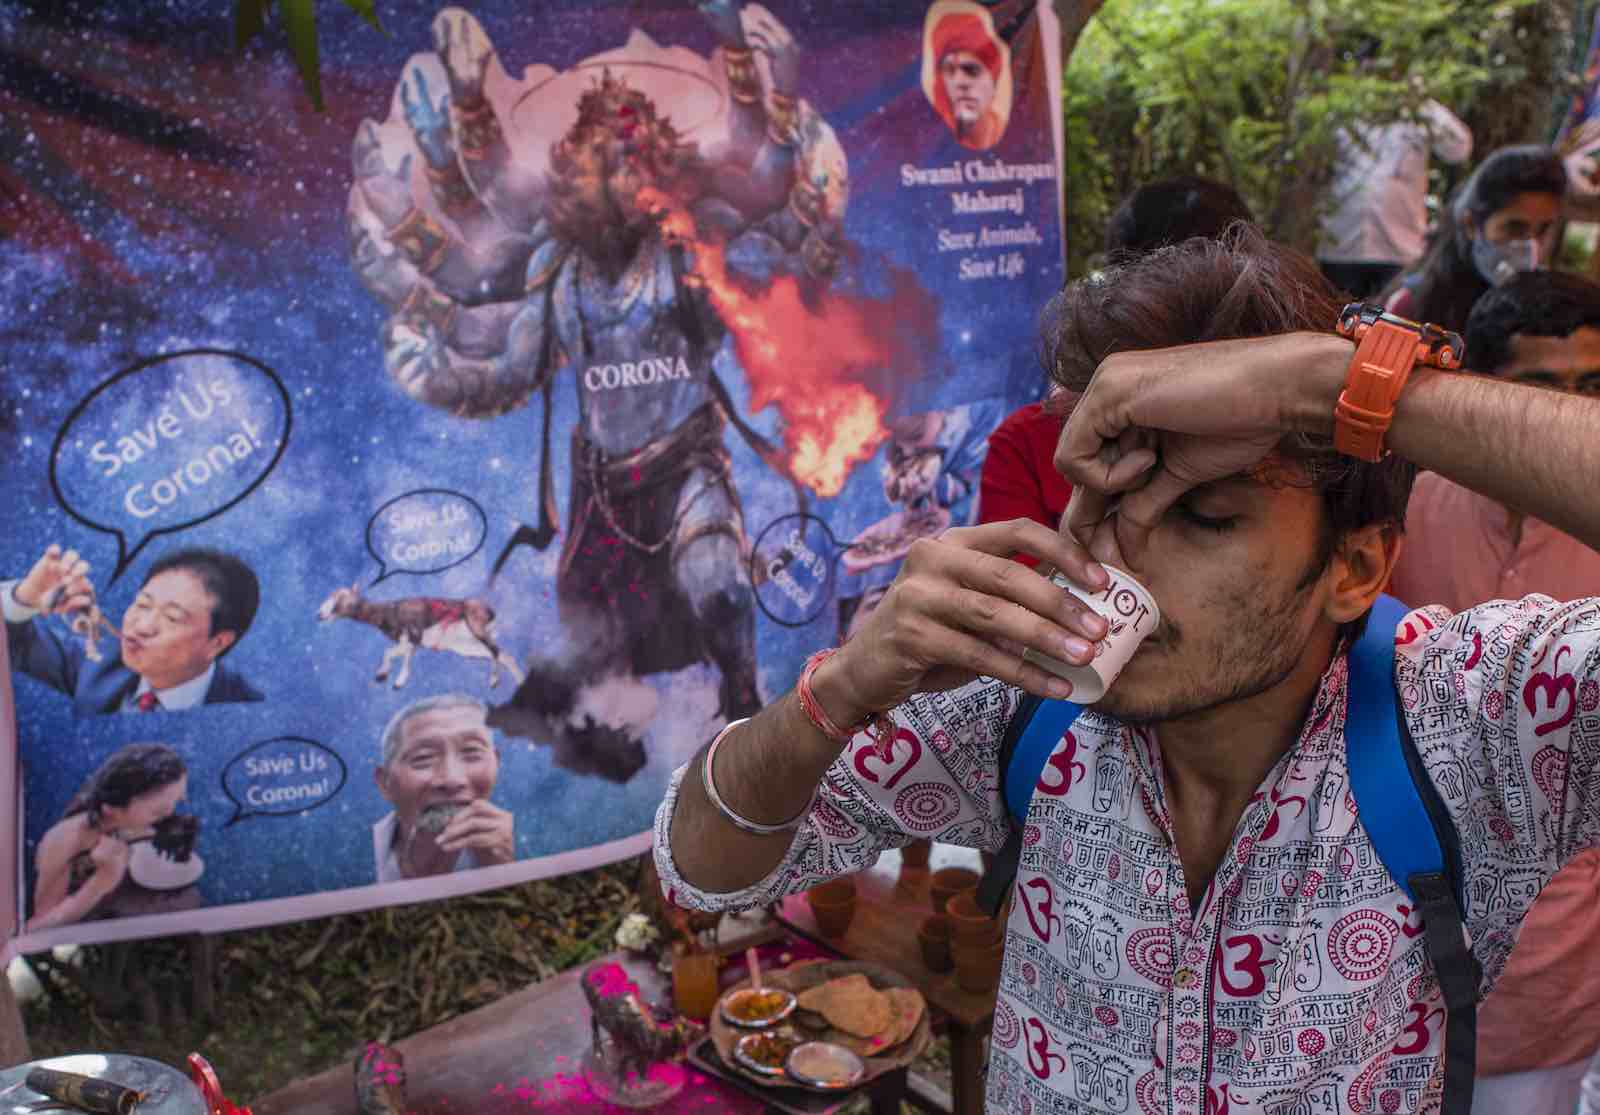 A urine drinking party to cure coronavirus infection, hosted by the Hindu organisation Akhil Bharat Hindu Mahasabha, 14 March in New Delhi, India